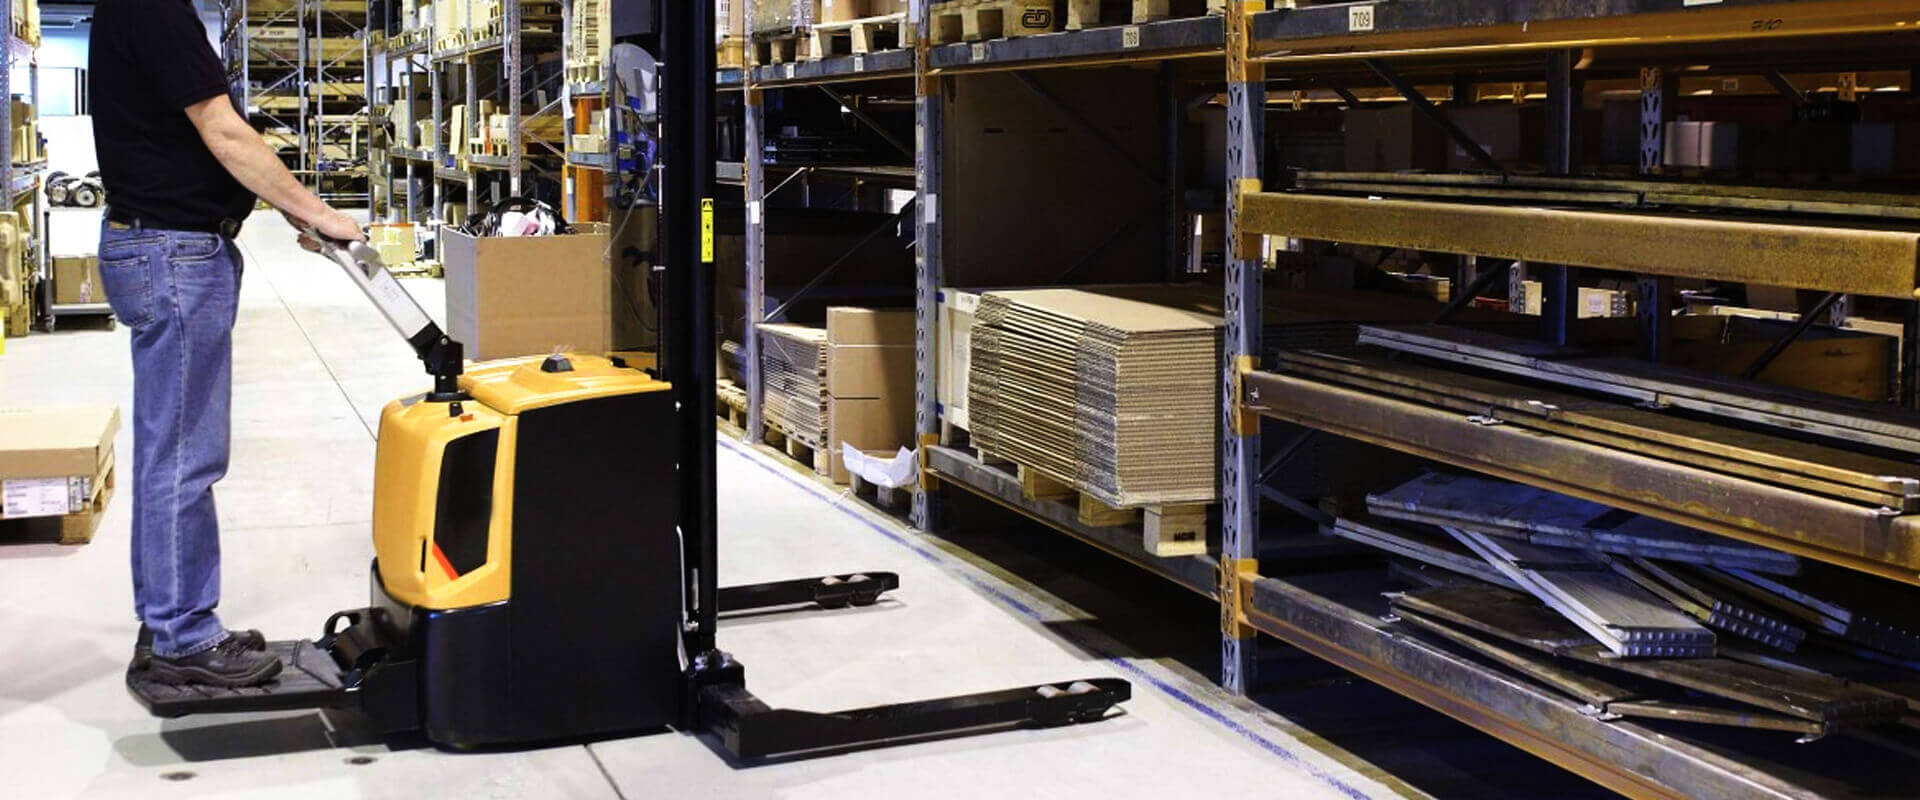 We provide Materials Handling Solutions